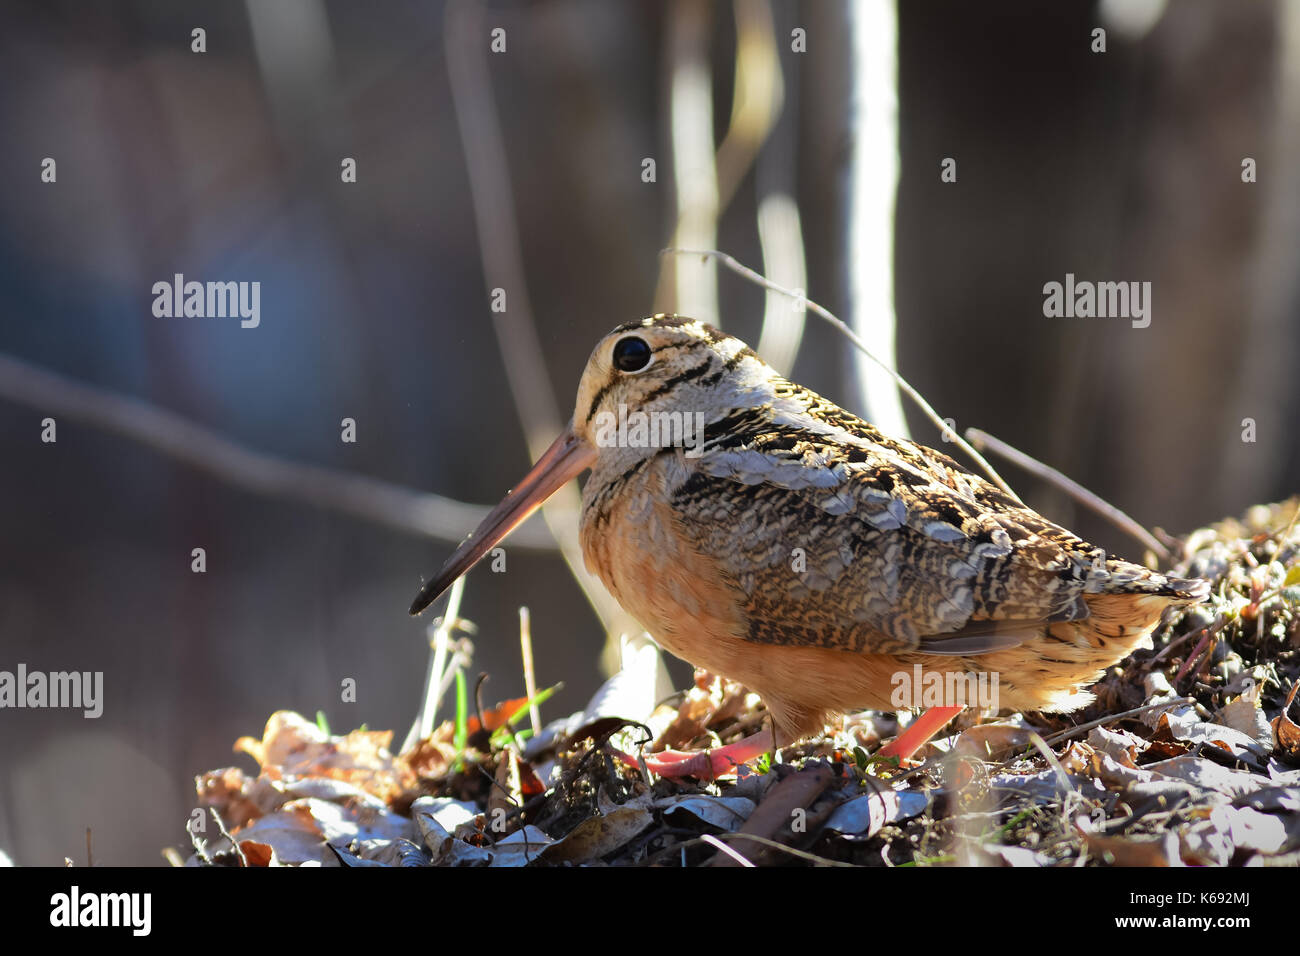 American woodcock (Scolopax minor) standing on the forest floor in the Adirondack Mountains in Upstate New York, Stock Photo